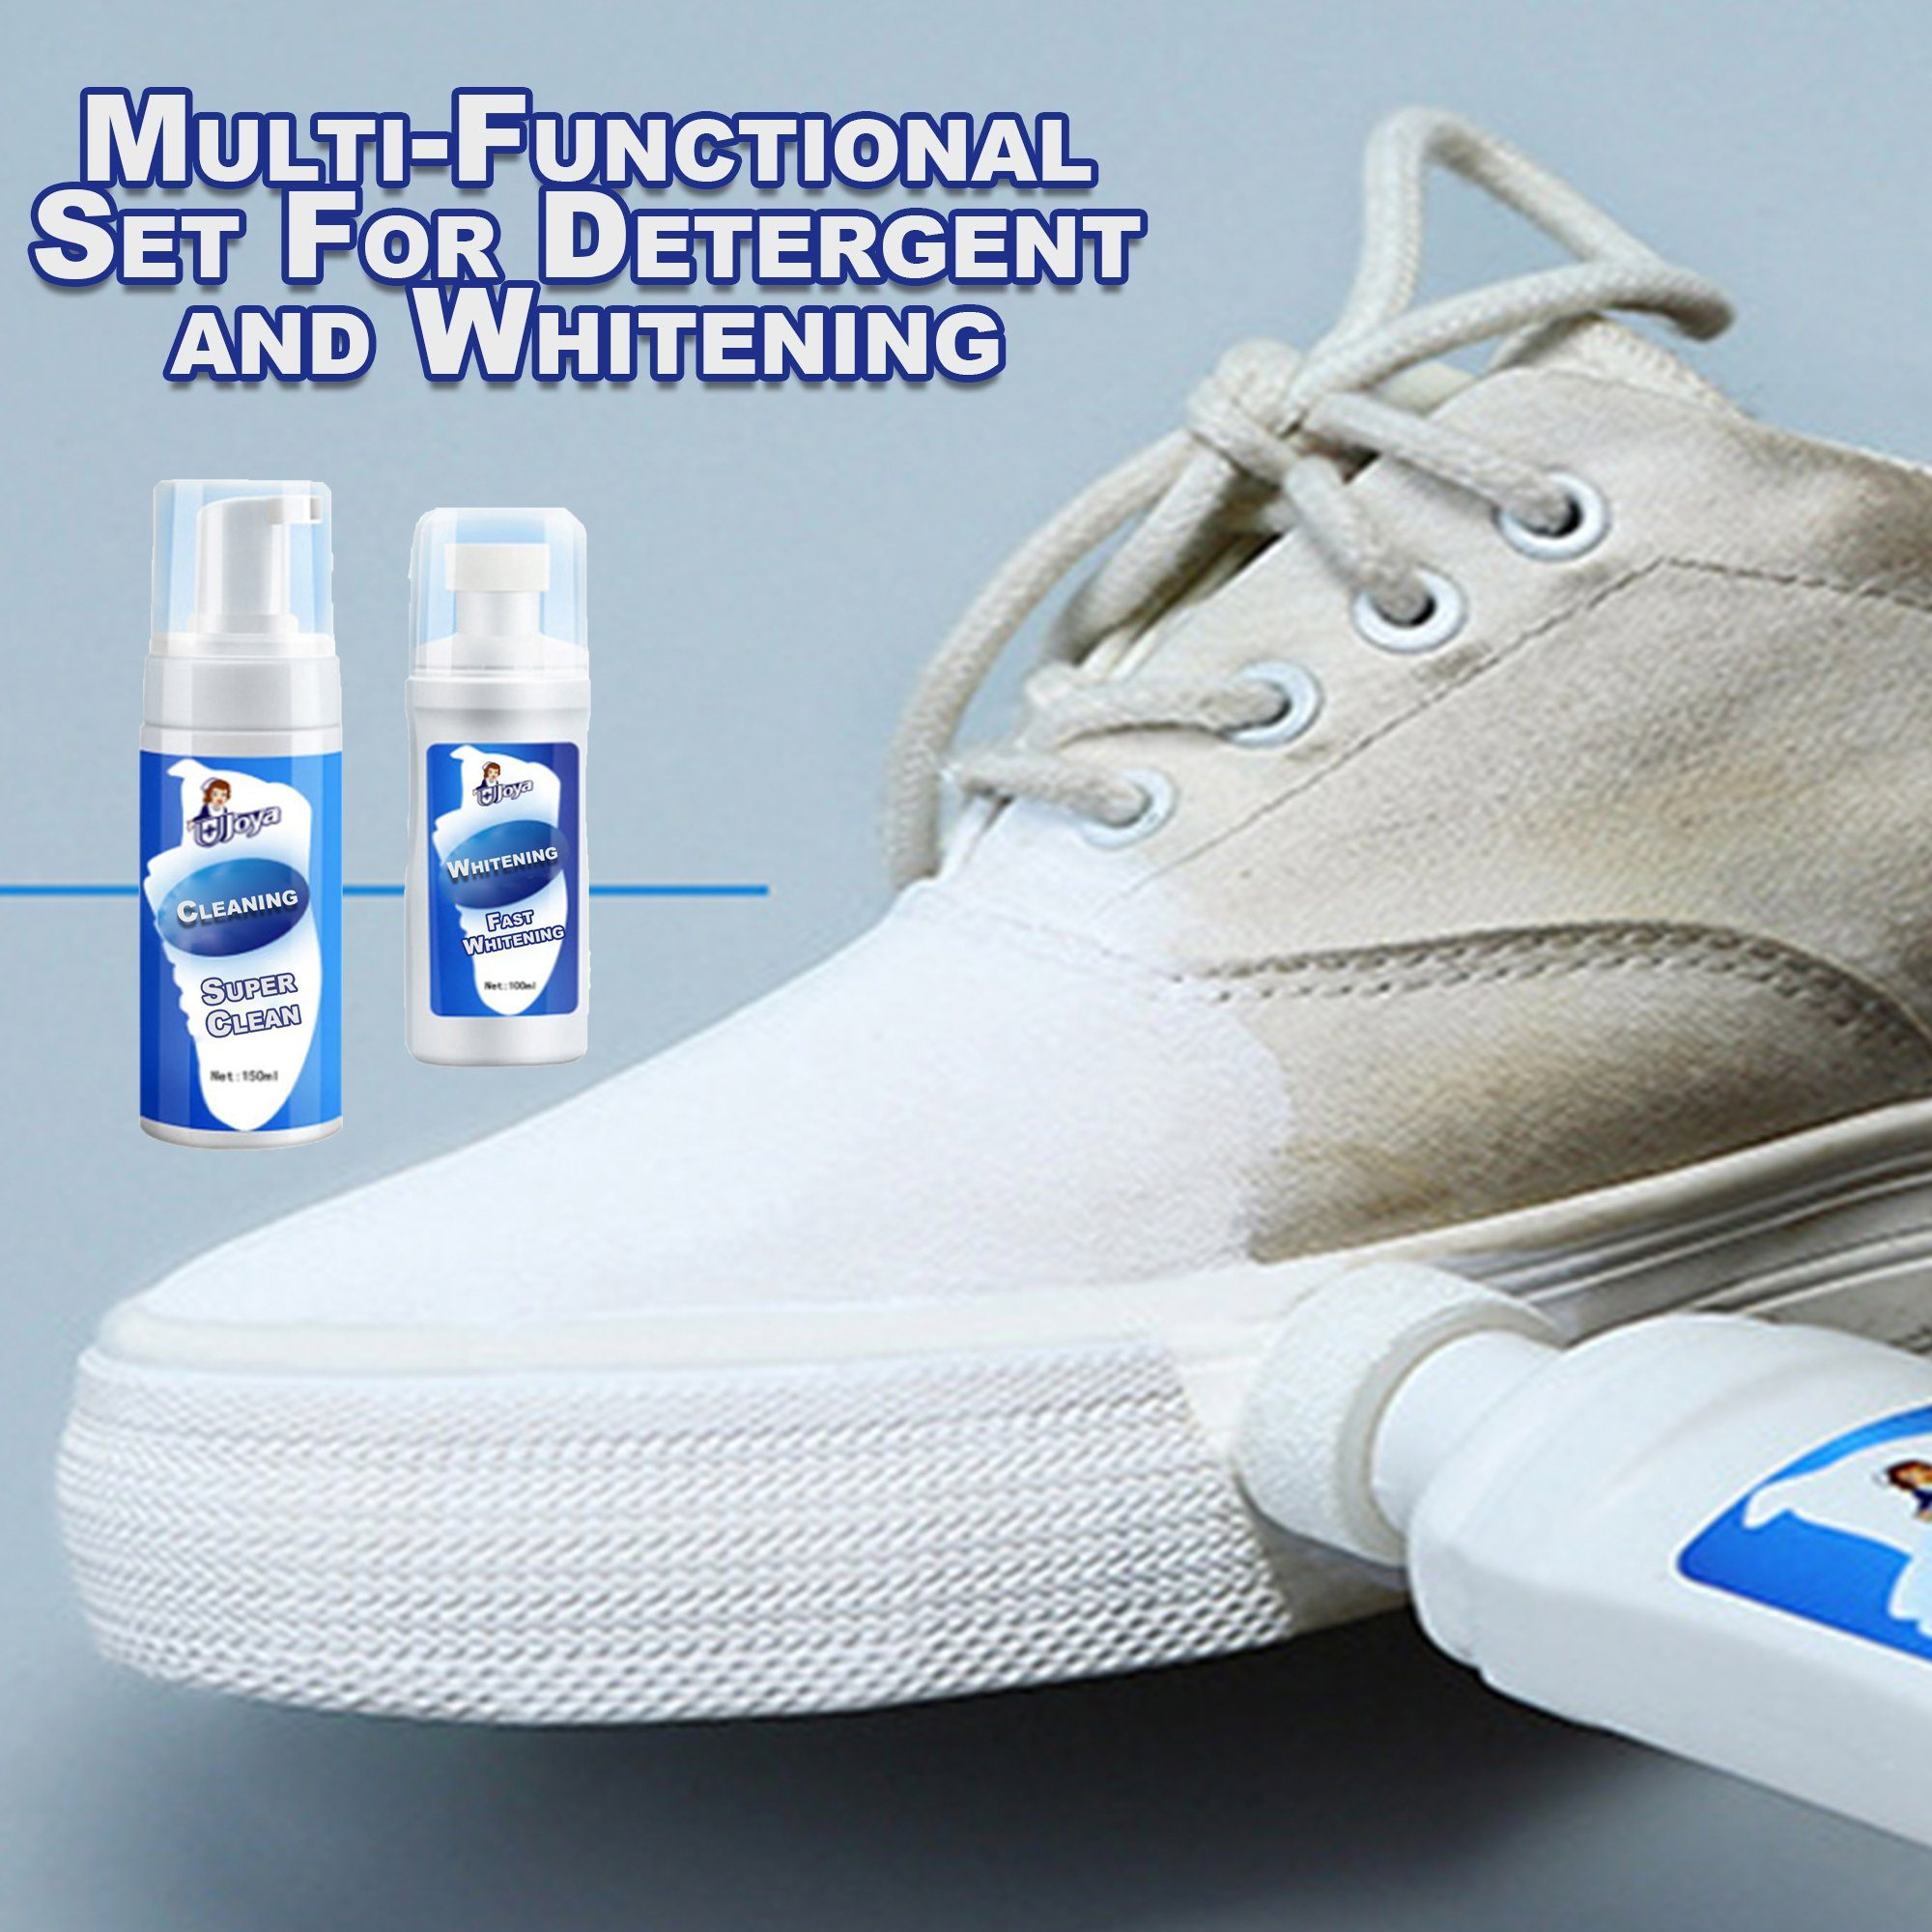 Multi-Functional Set For Detergent and Whitening